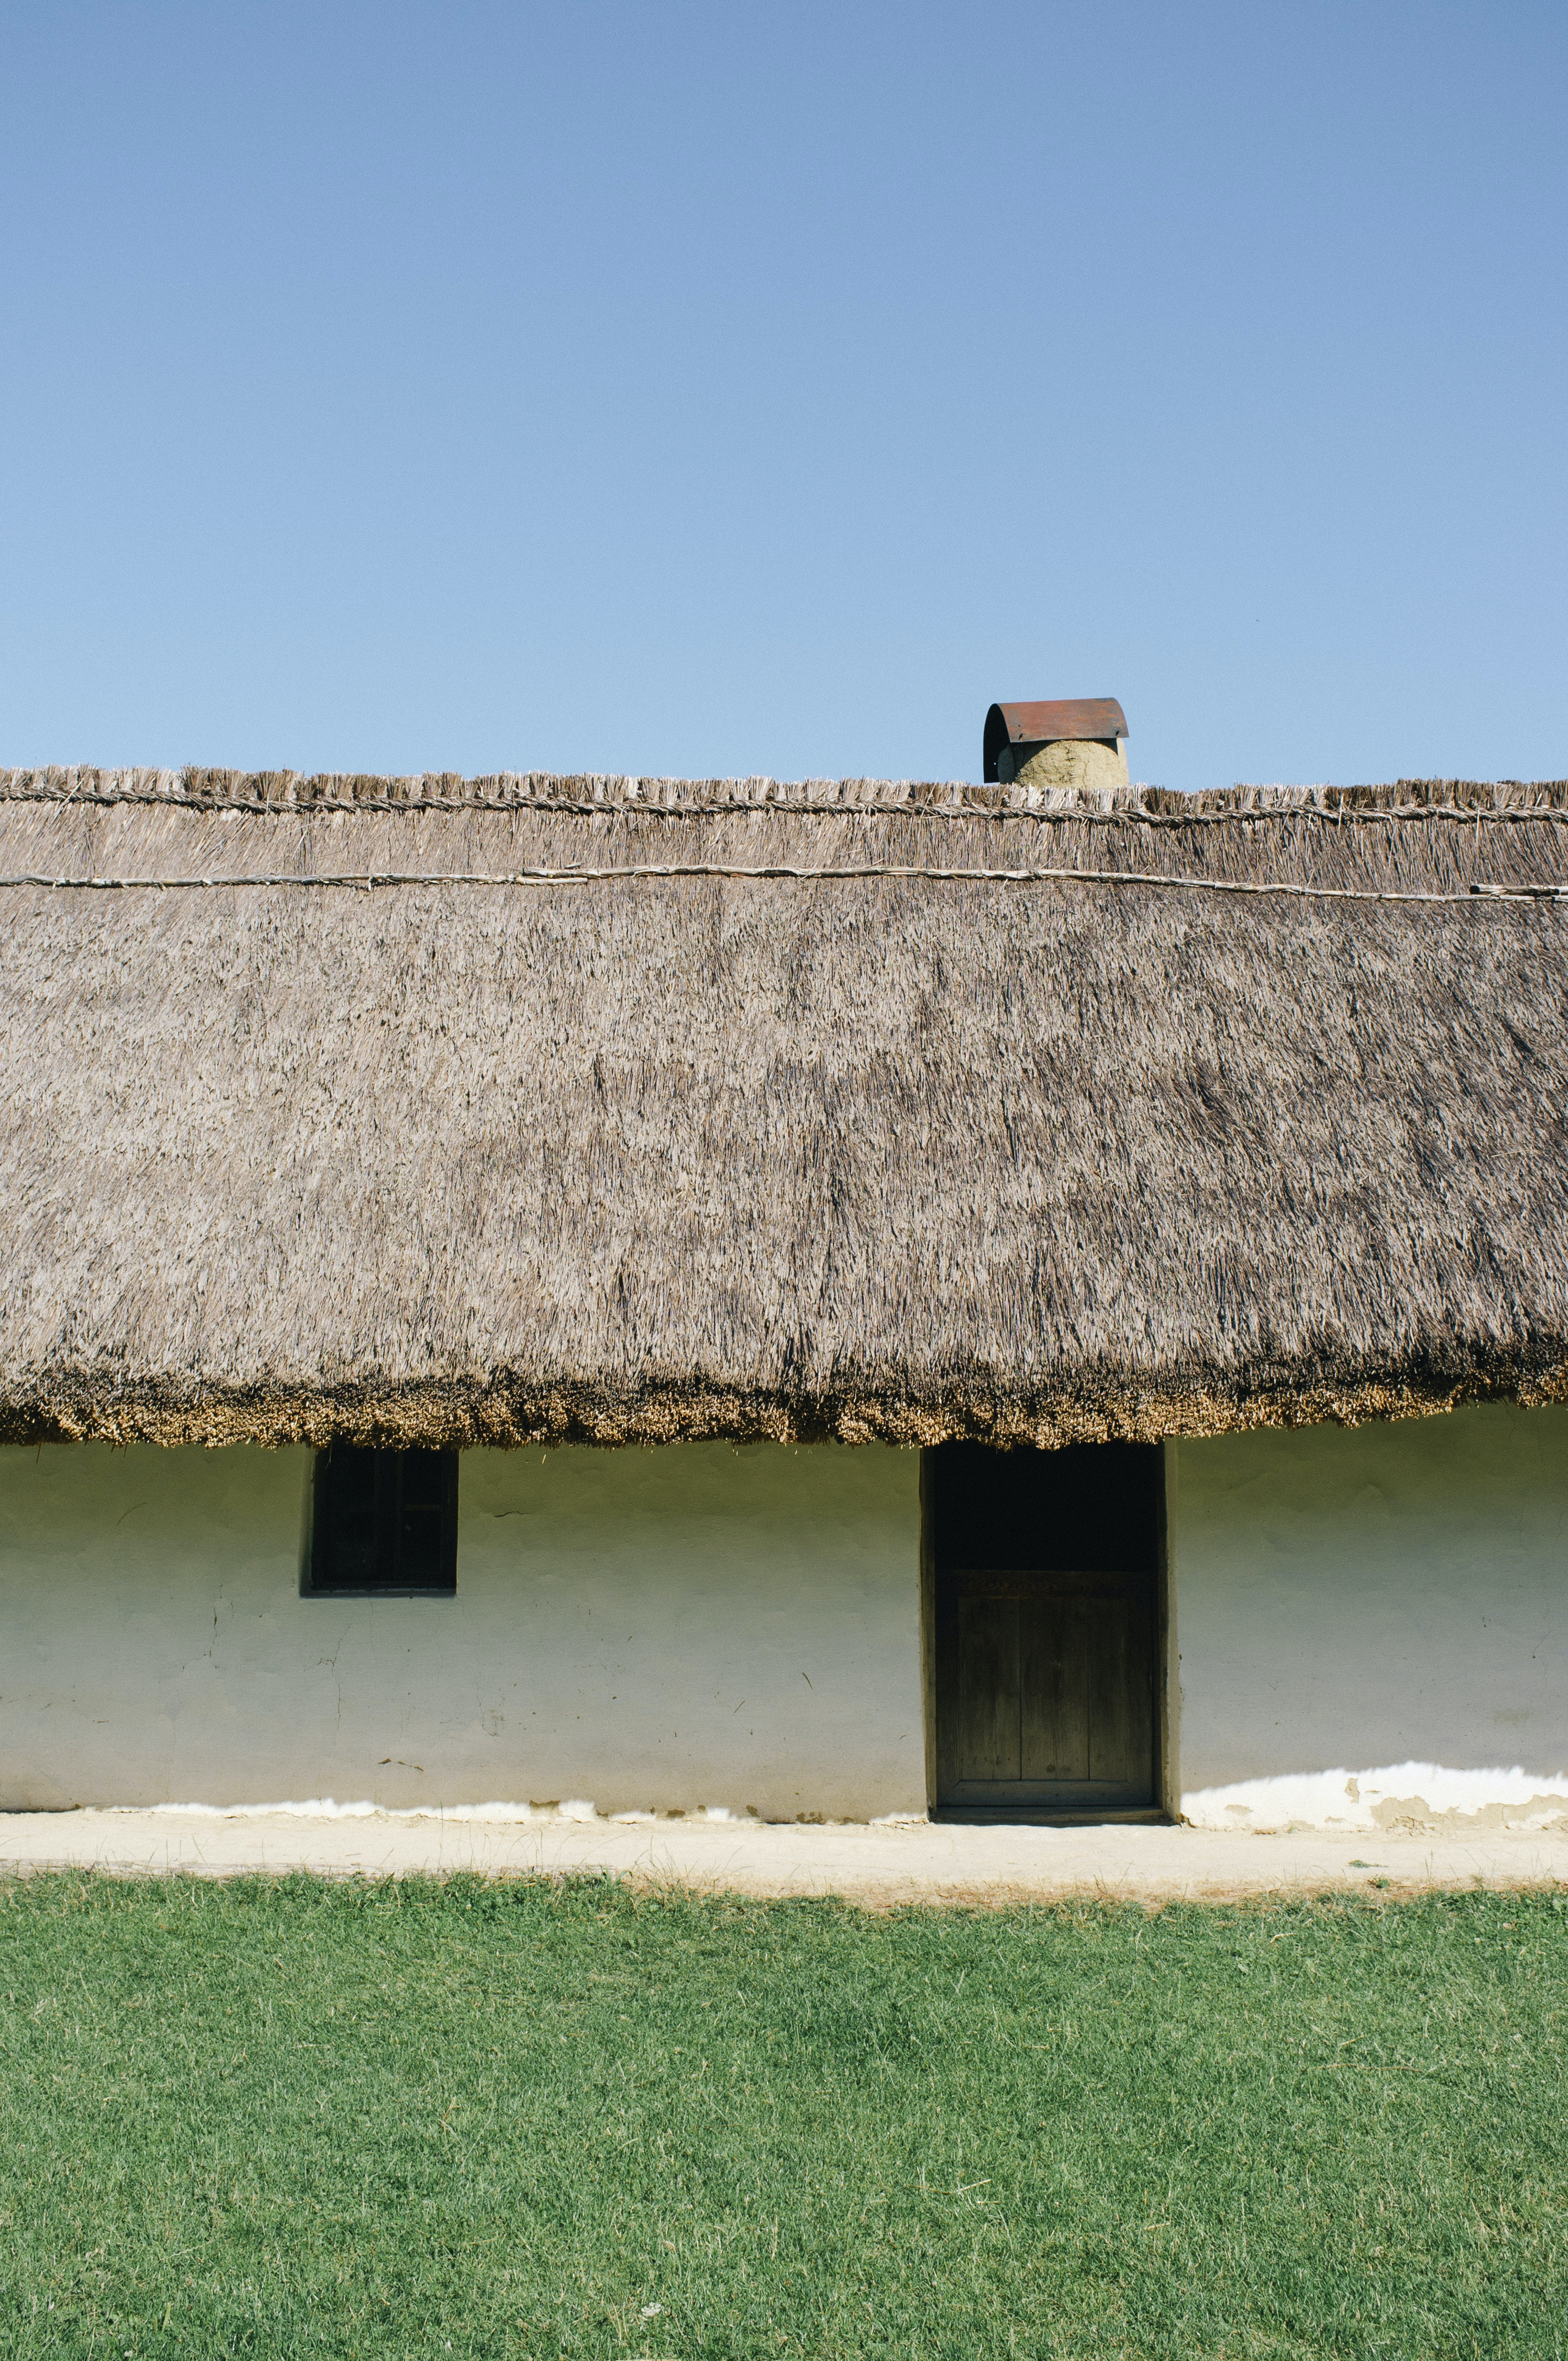 Thatched roof house with green grass lawn under blue skies